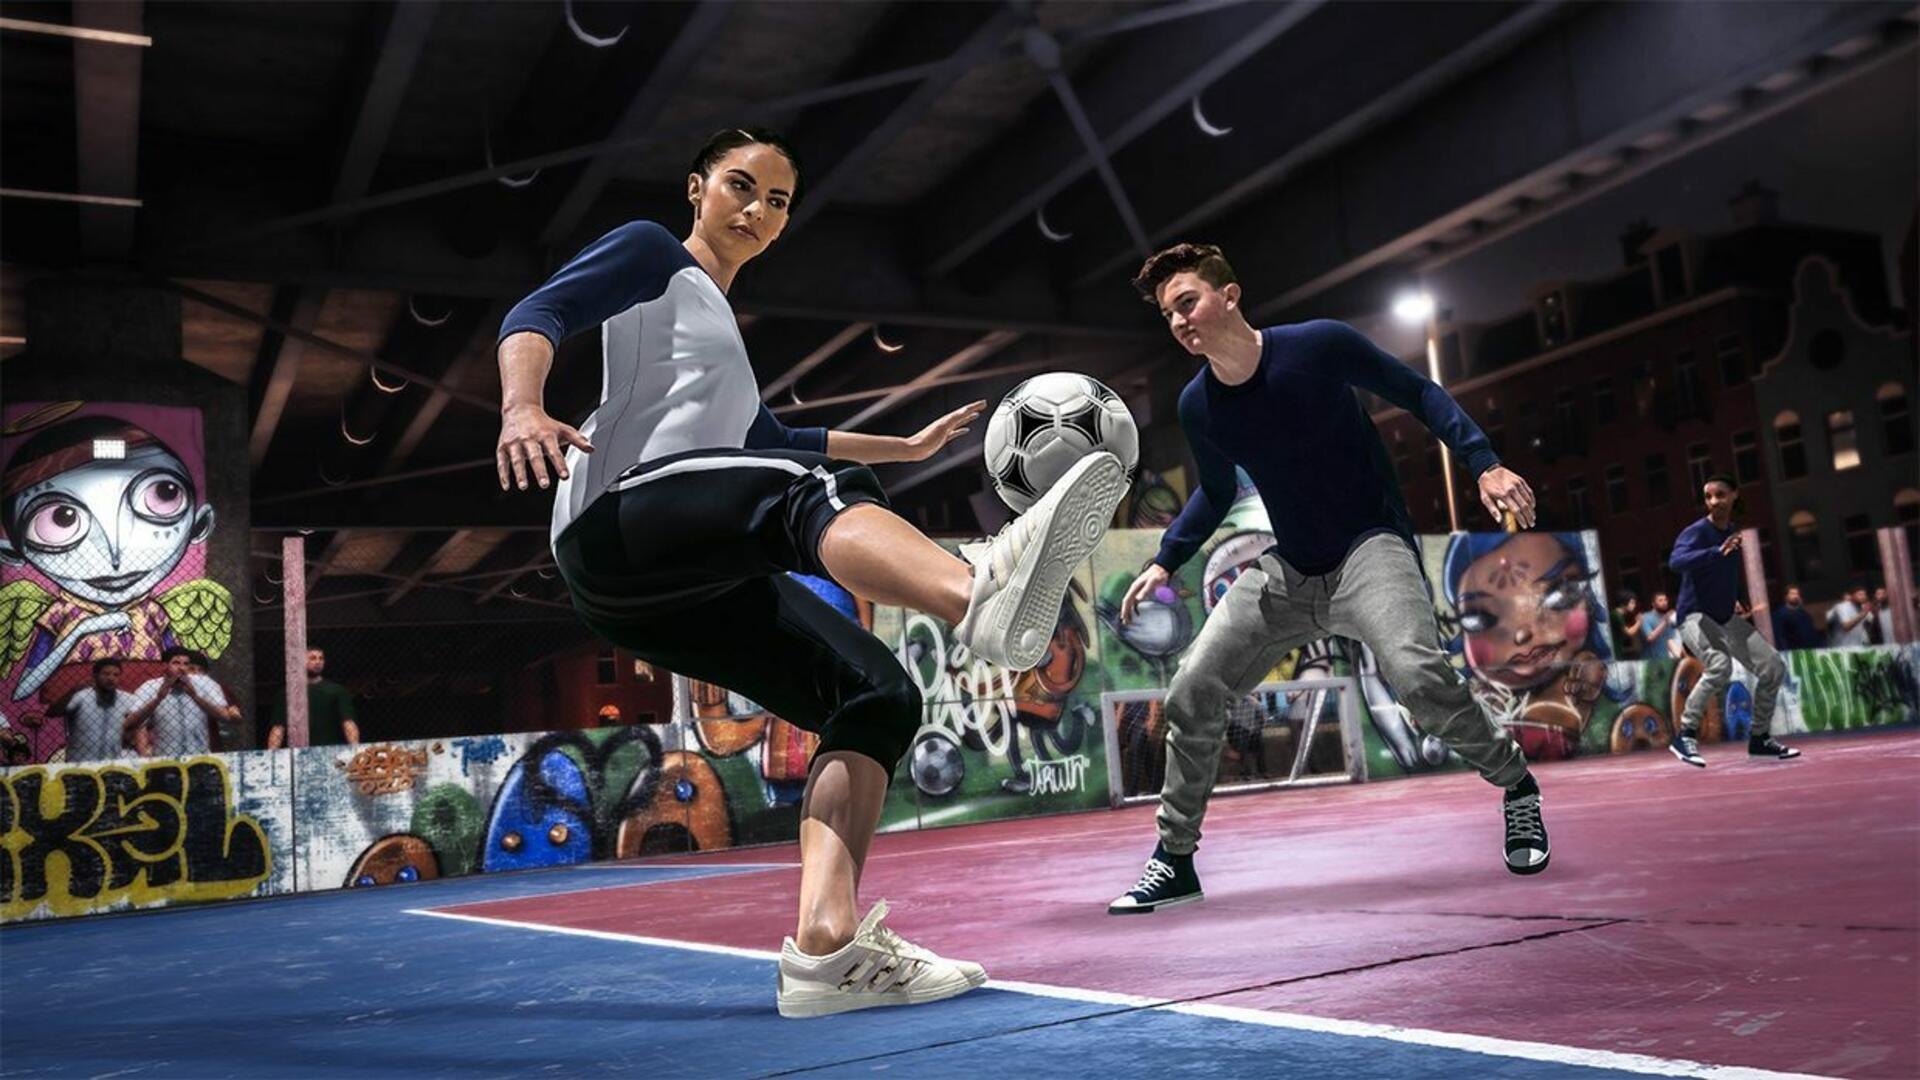 FIFA 20 Developers on Why Volta Won't Have Online Team Play, the Microtransactions Question, and More